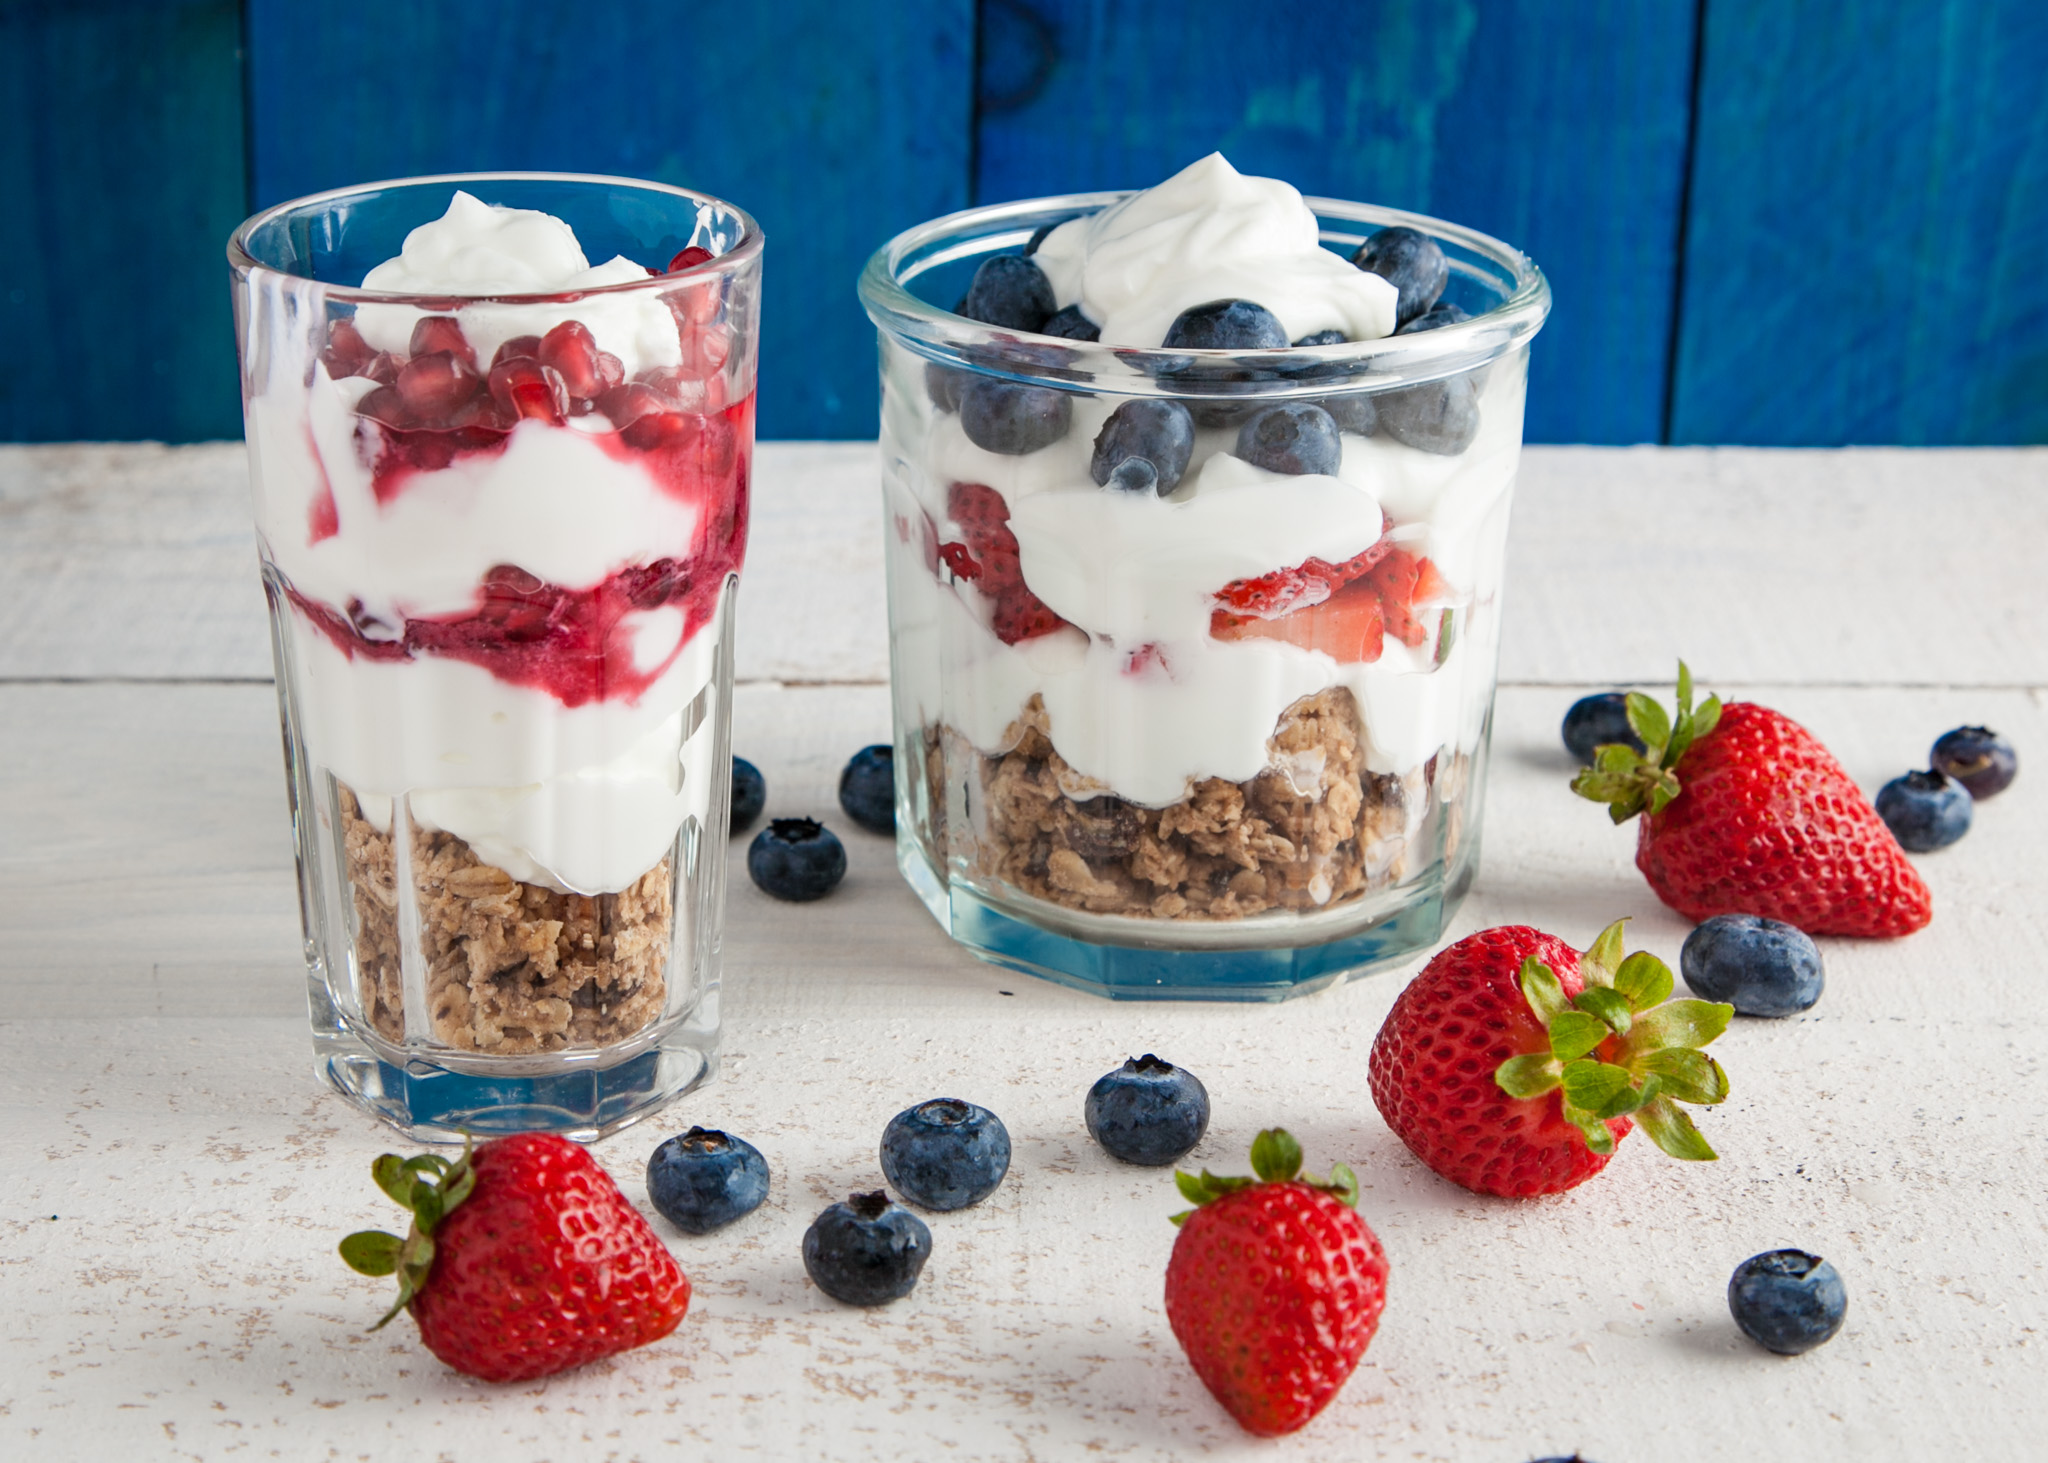 Soy yogurt with granola, fresh a selection of fresh fruits and berries